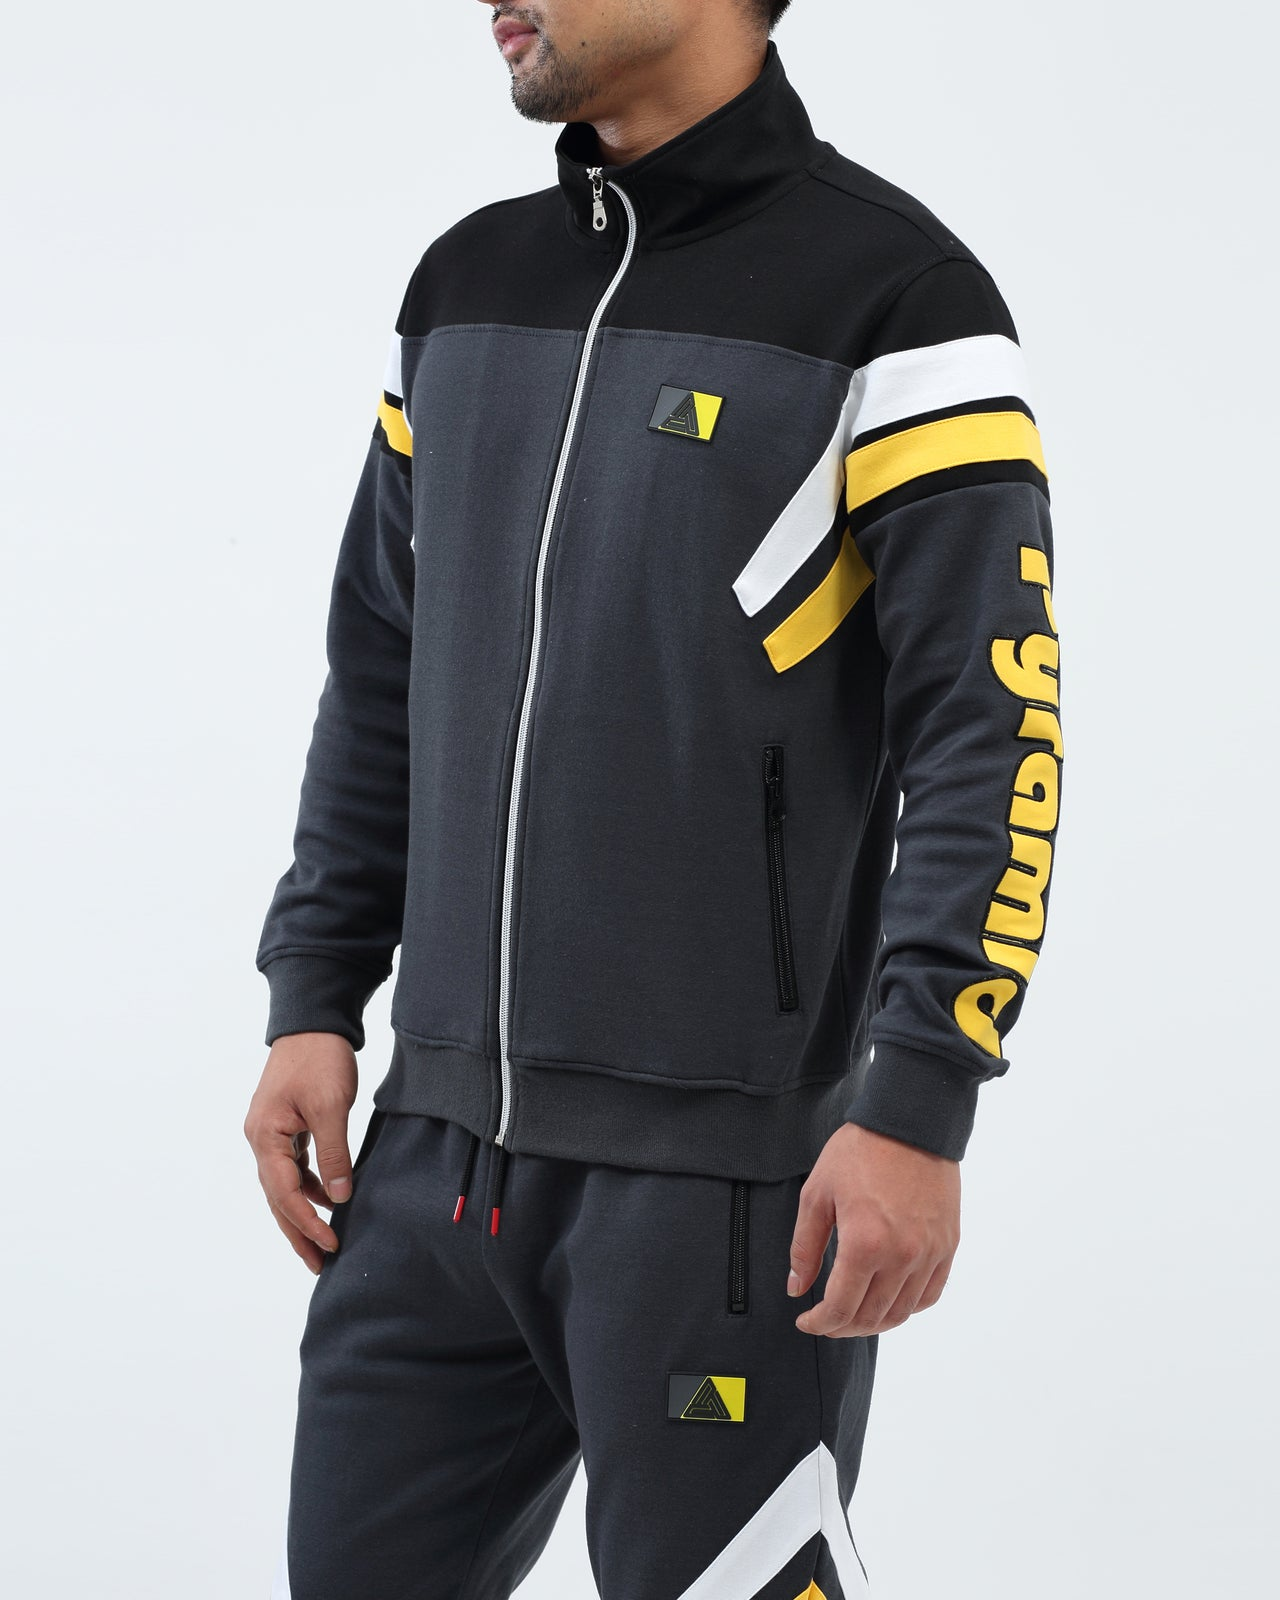 Two Stripes Blocked Track Jacket - Color: Gray